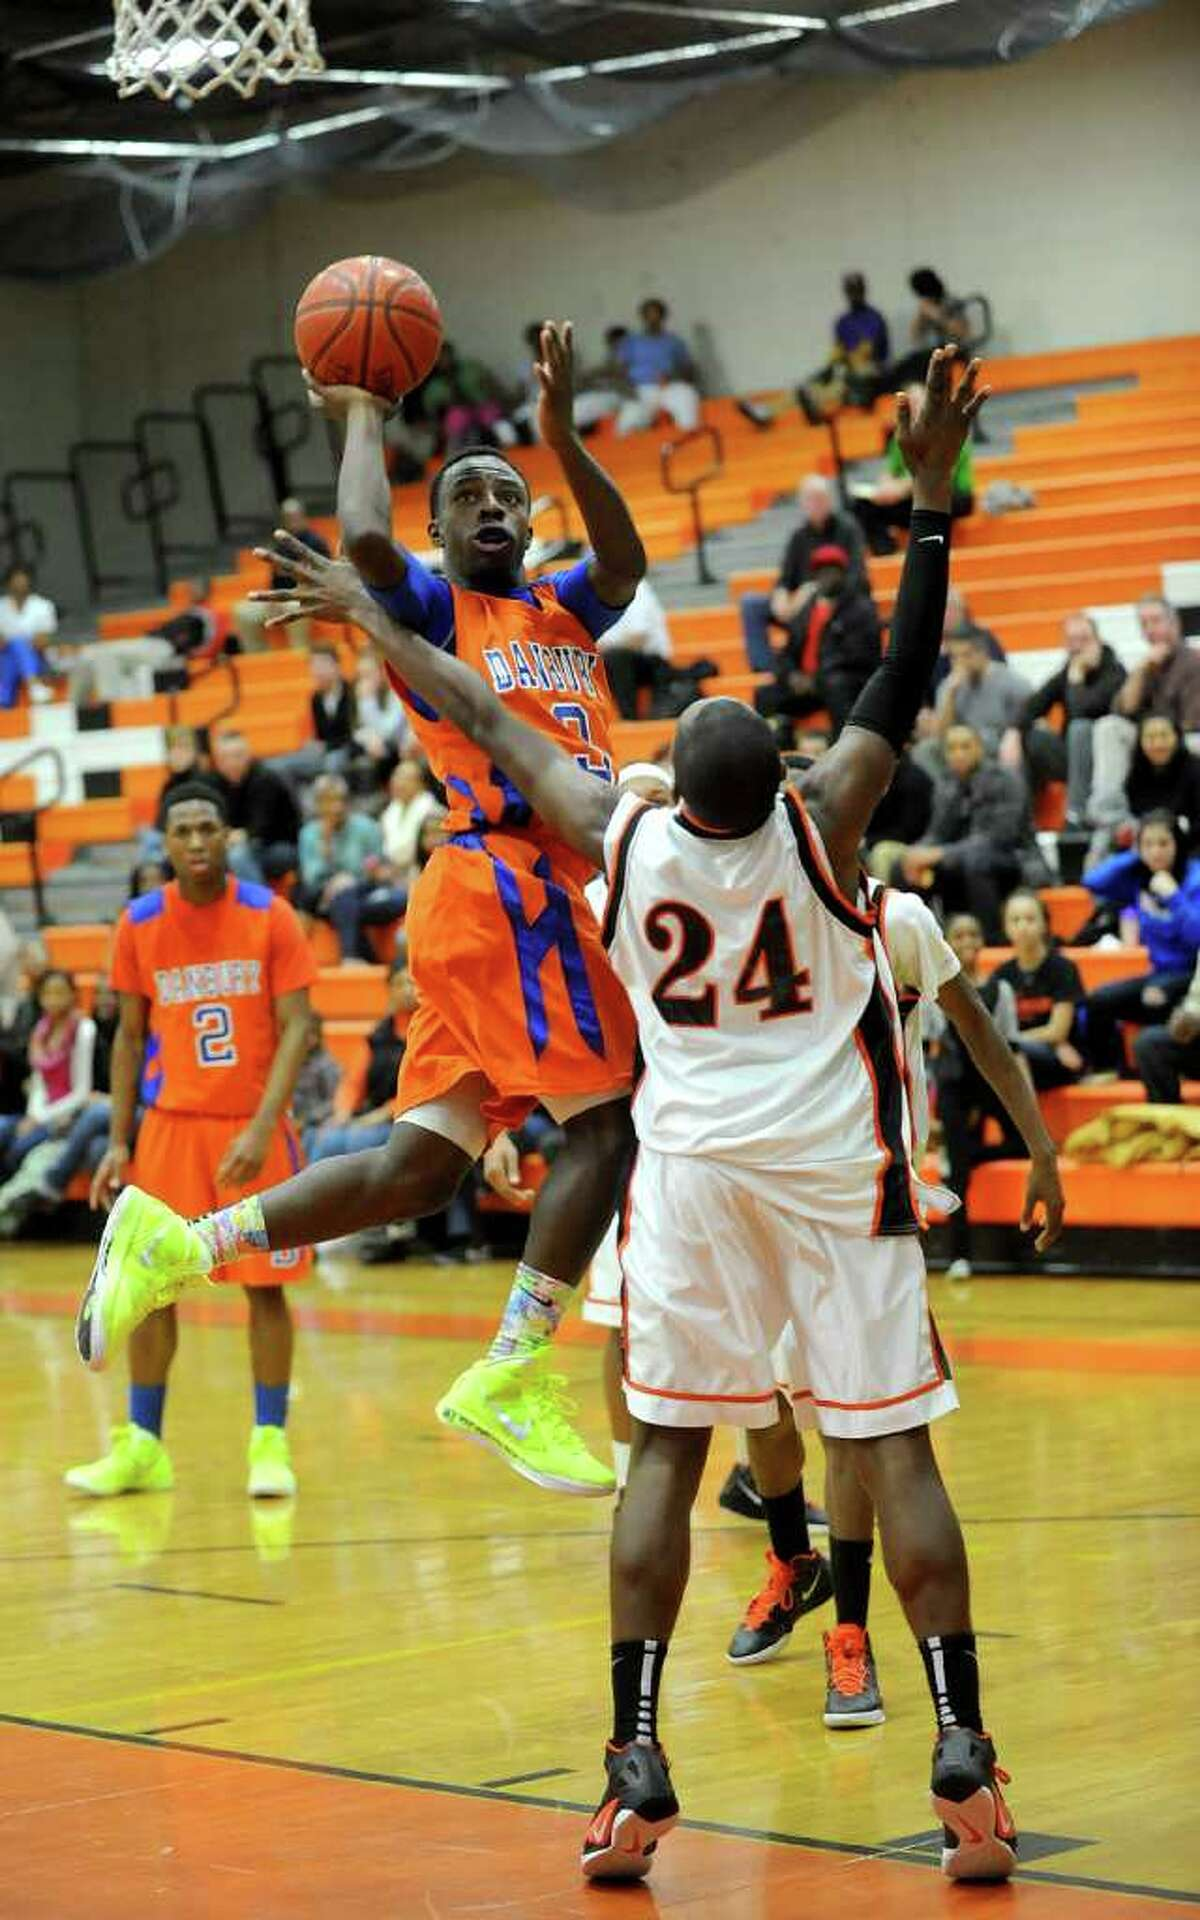 Danbury's James Harrington takes a shot as he is guarded by Stamford's Kenny Wright during Friday's game in Stamford on January 27, 2012.